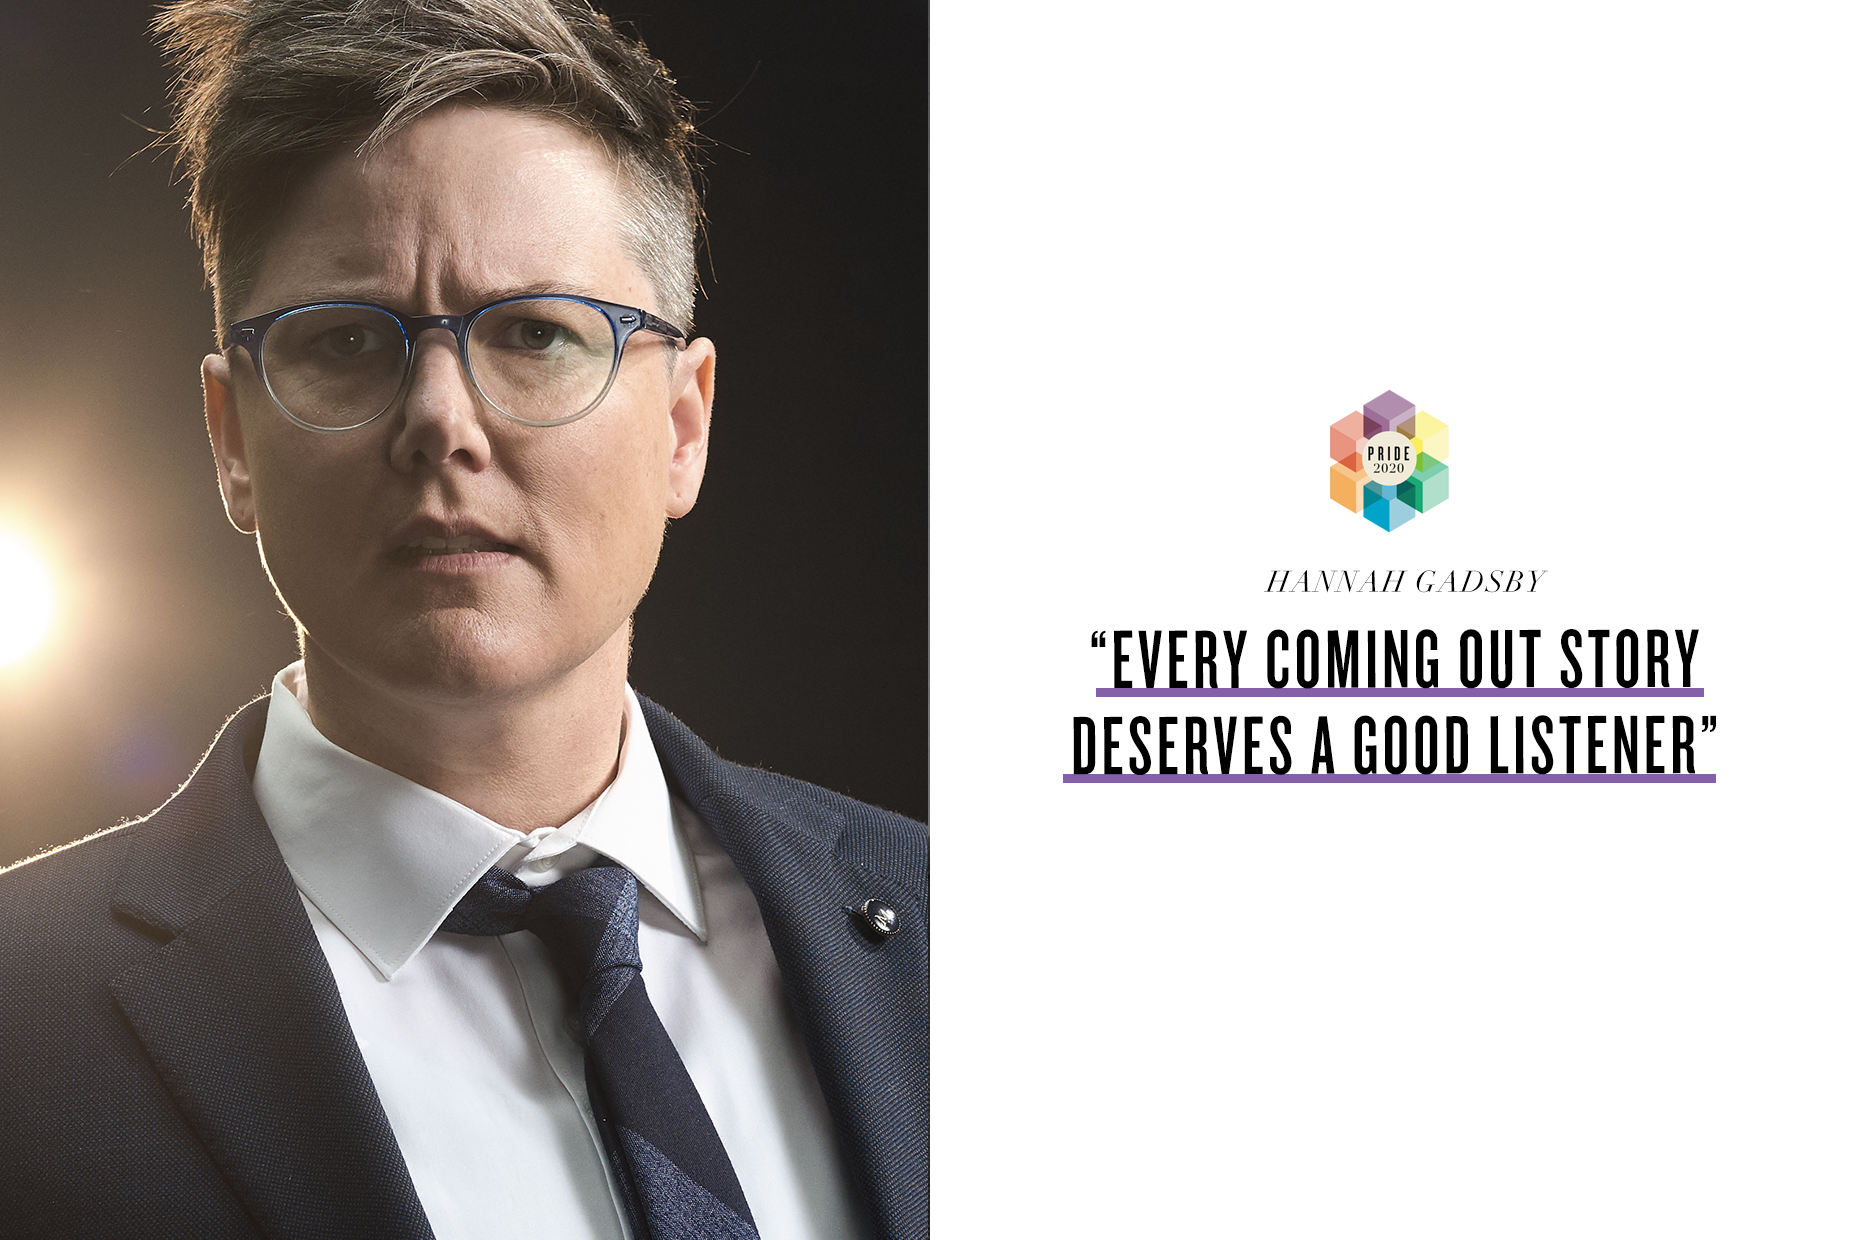 coming out stories 2020 - hannah gadsby